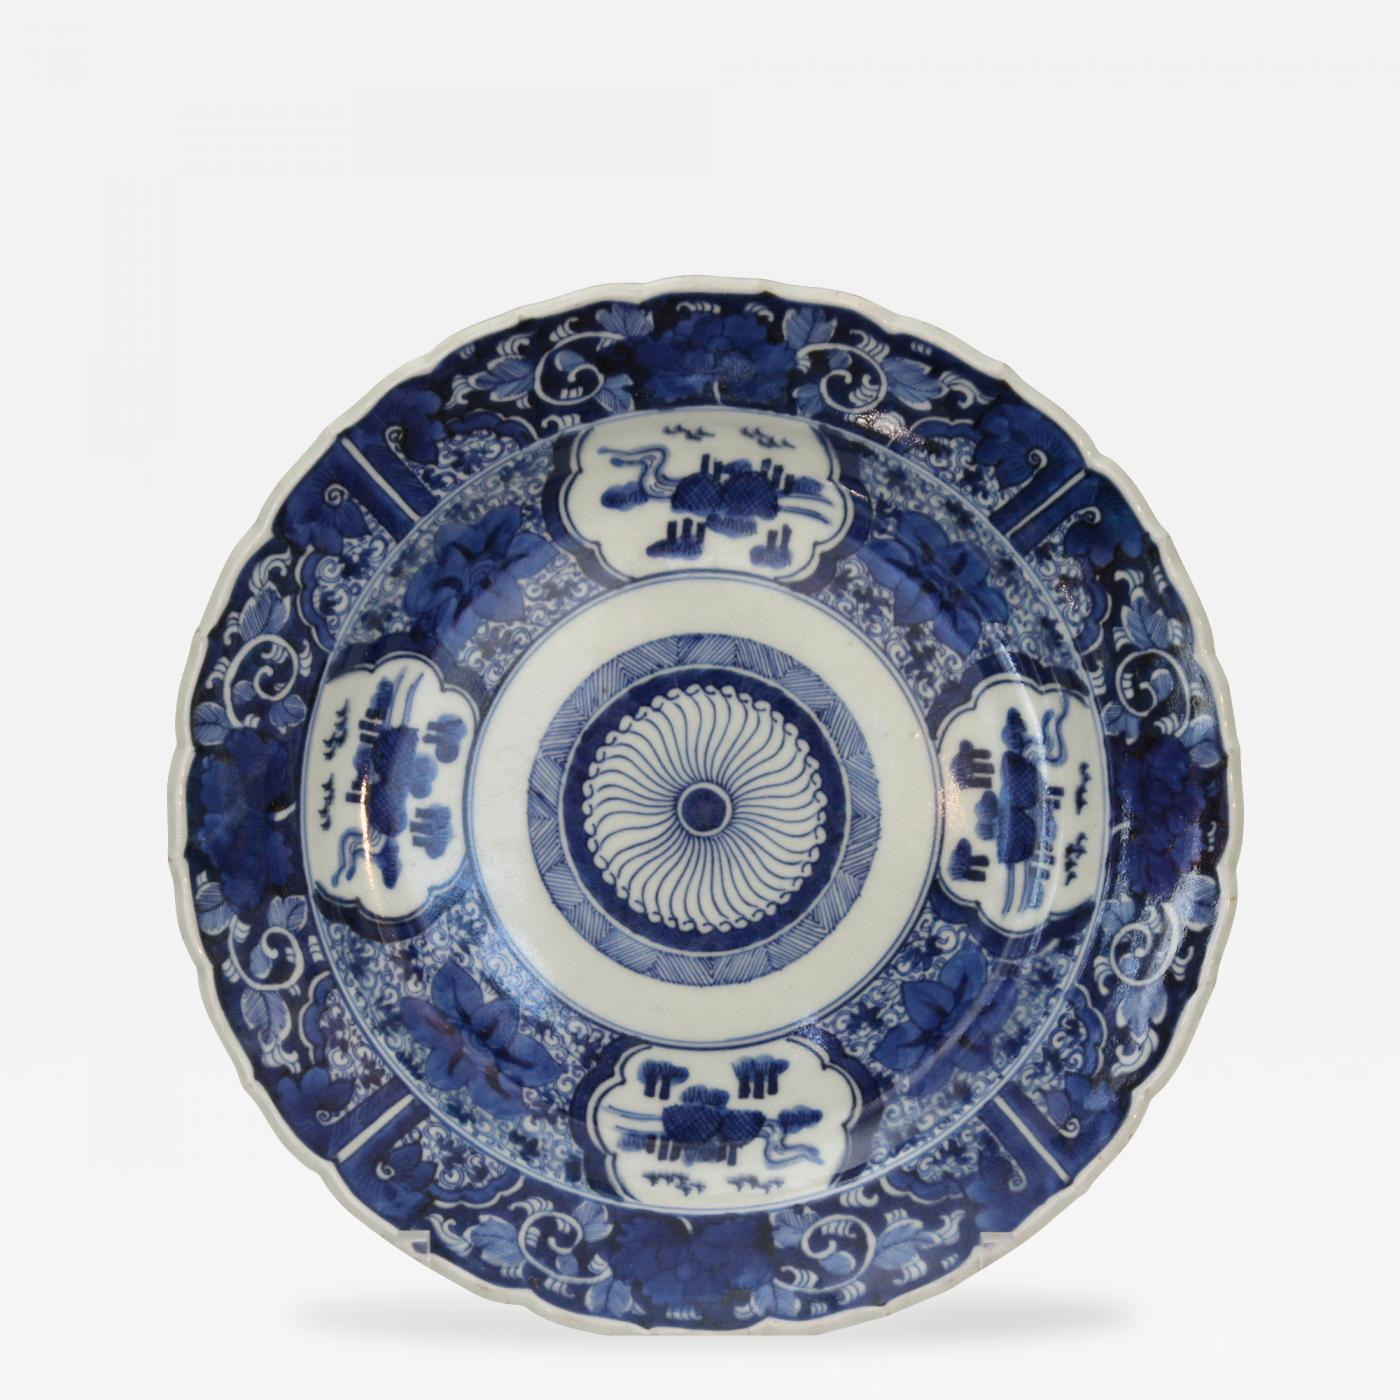 Listings / Decorative Arts / Tablewares / Plates u0026 Chargers · Imari Antique Japanese Imari Blue White Porcelain ...  sc 1 st  Incollect : blue and white porcelain dinnerware - pezcame.com